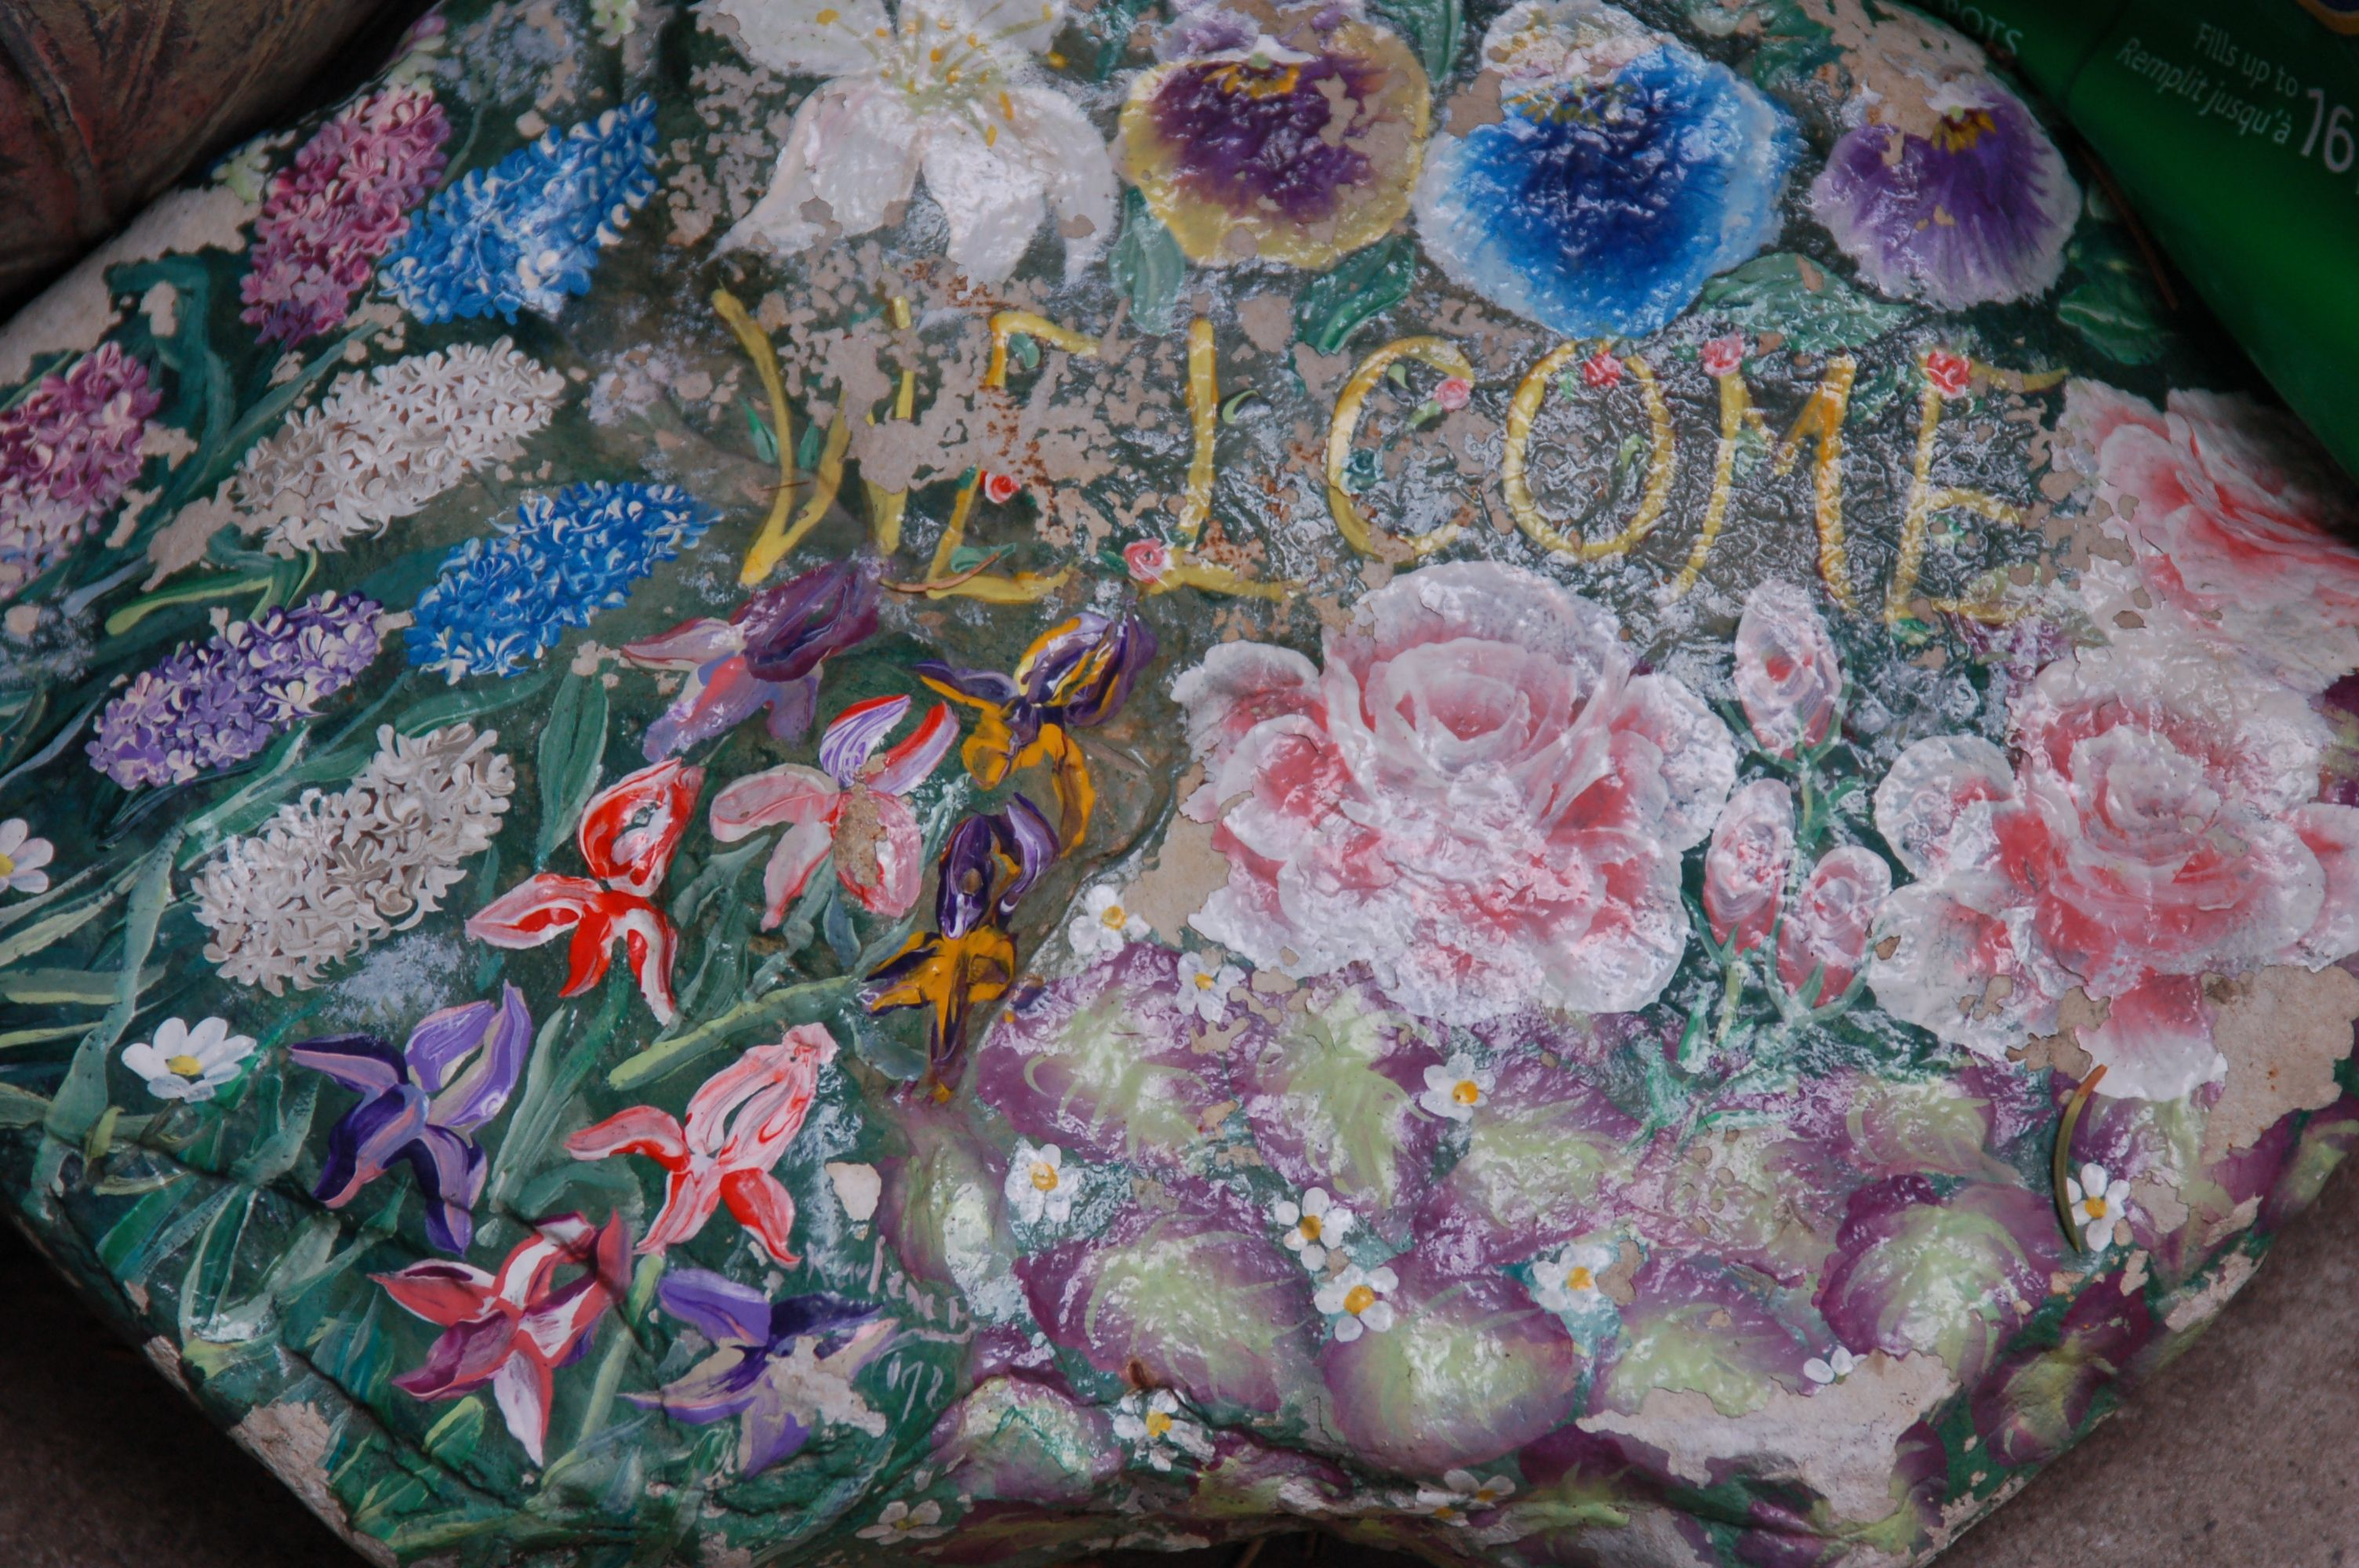 This stone was painted for me years ago by a former Chinook Park School parent. Beautiful work!